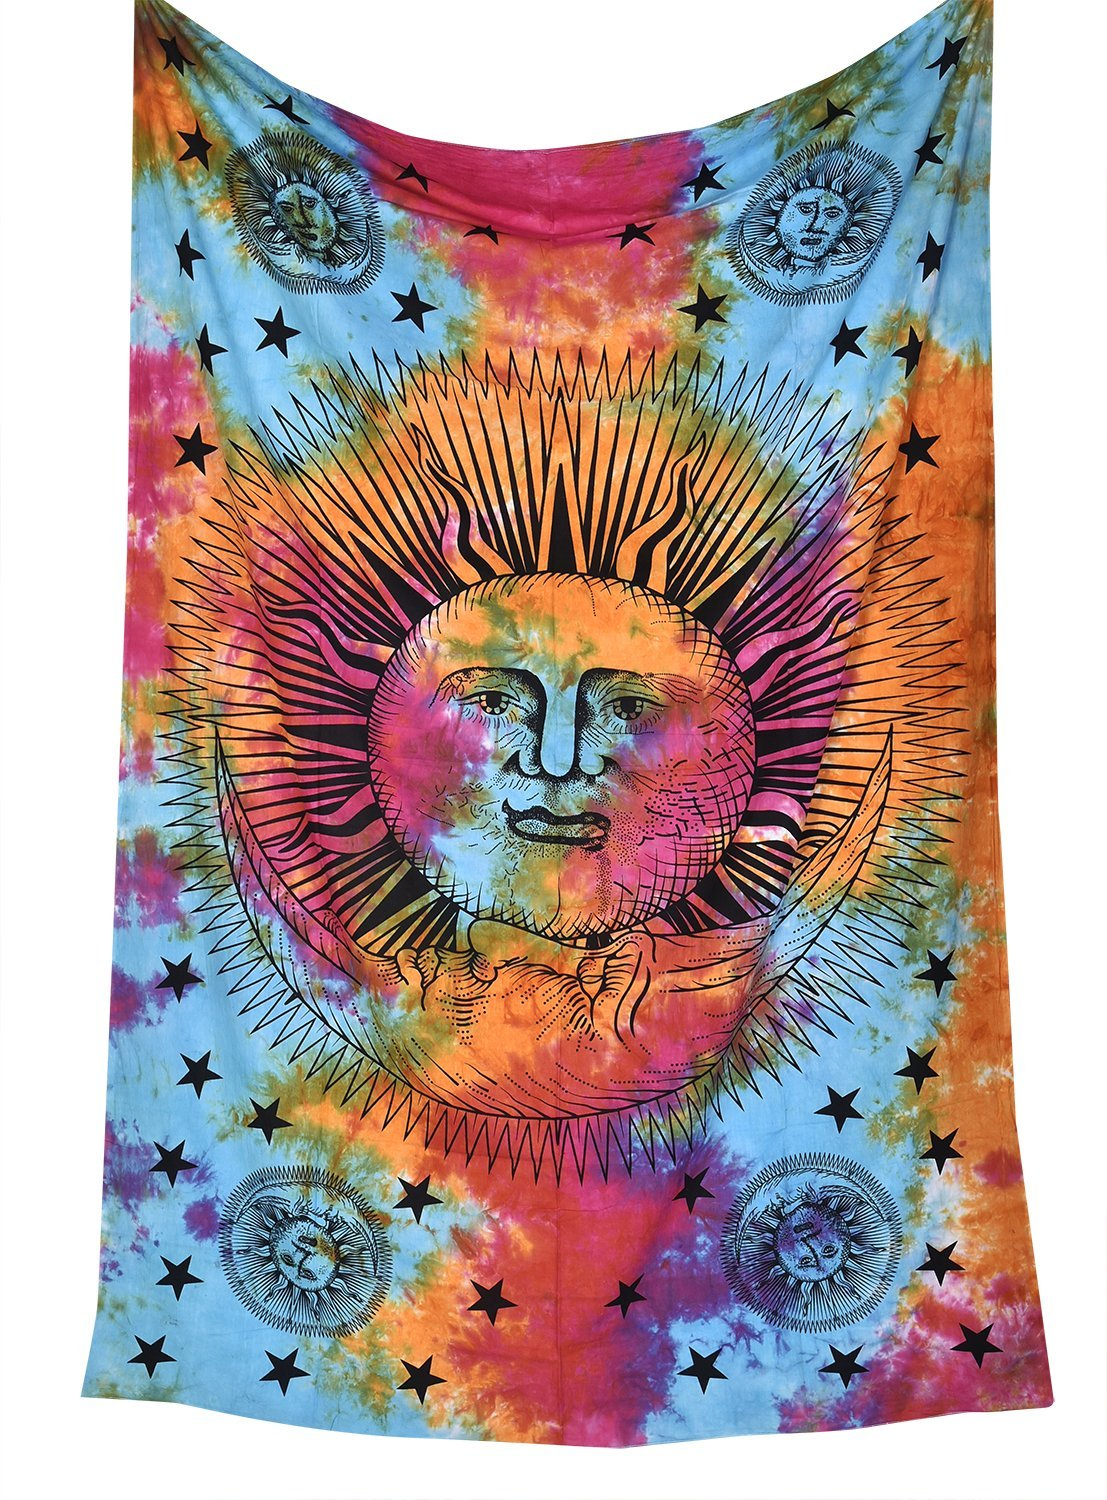 Sun Moon Tapestry Celestial Tapestry Psychedelic Celestial Sun Moon Stars Tie Dye Tapestry Hippie Hippy Wall Hanging Indian Tapestry